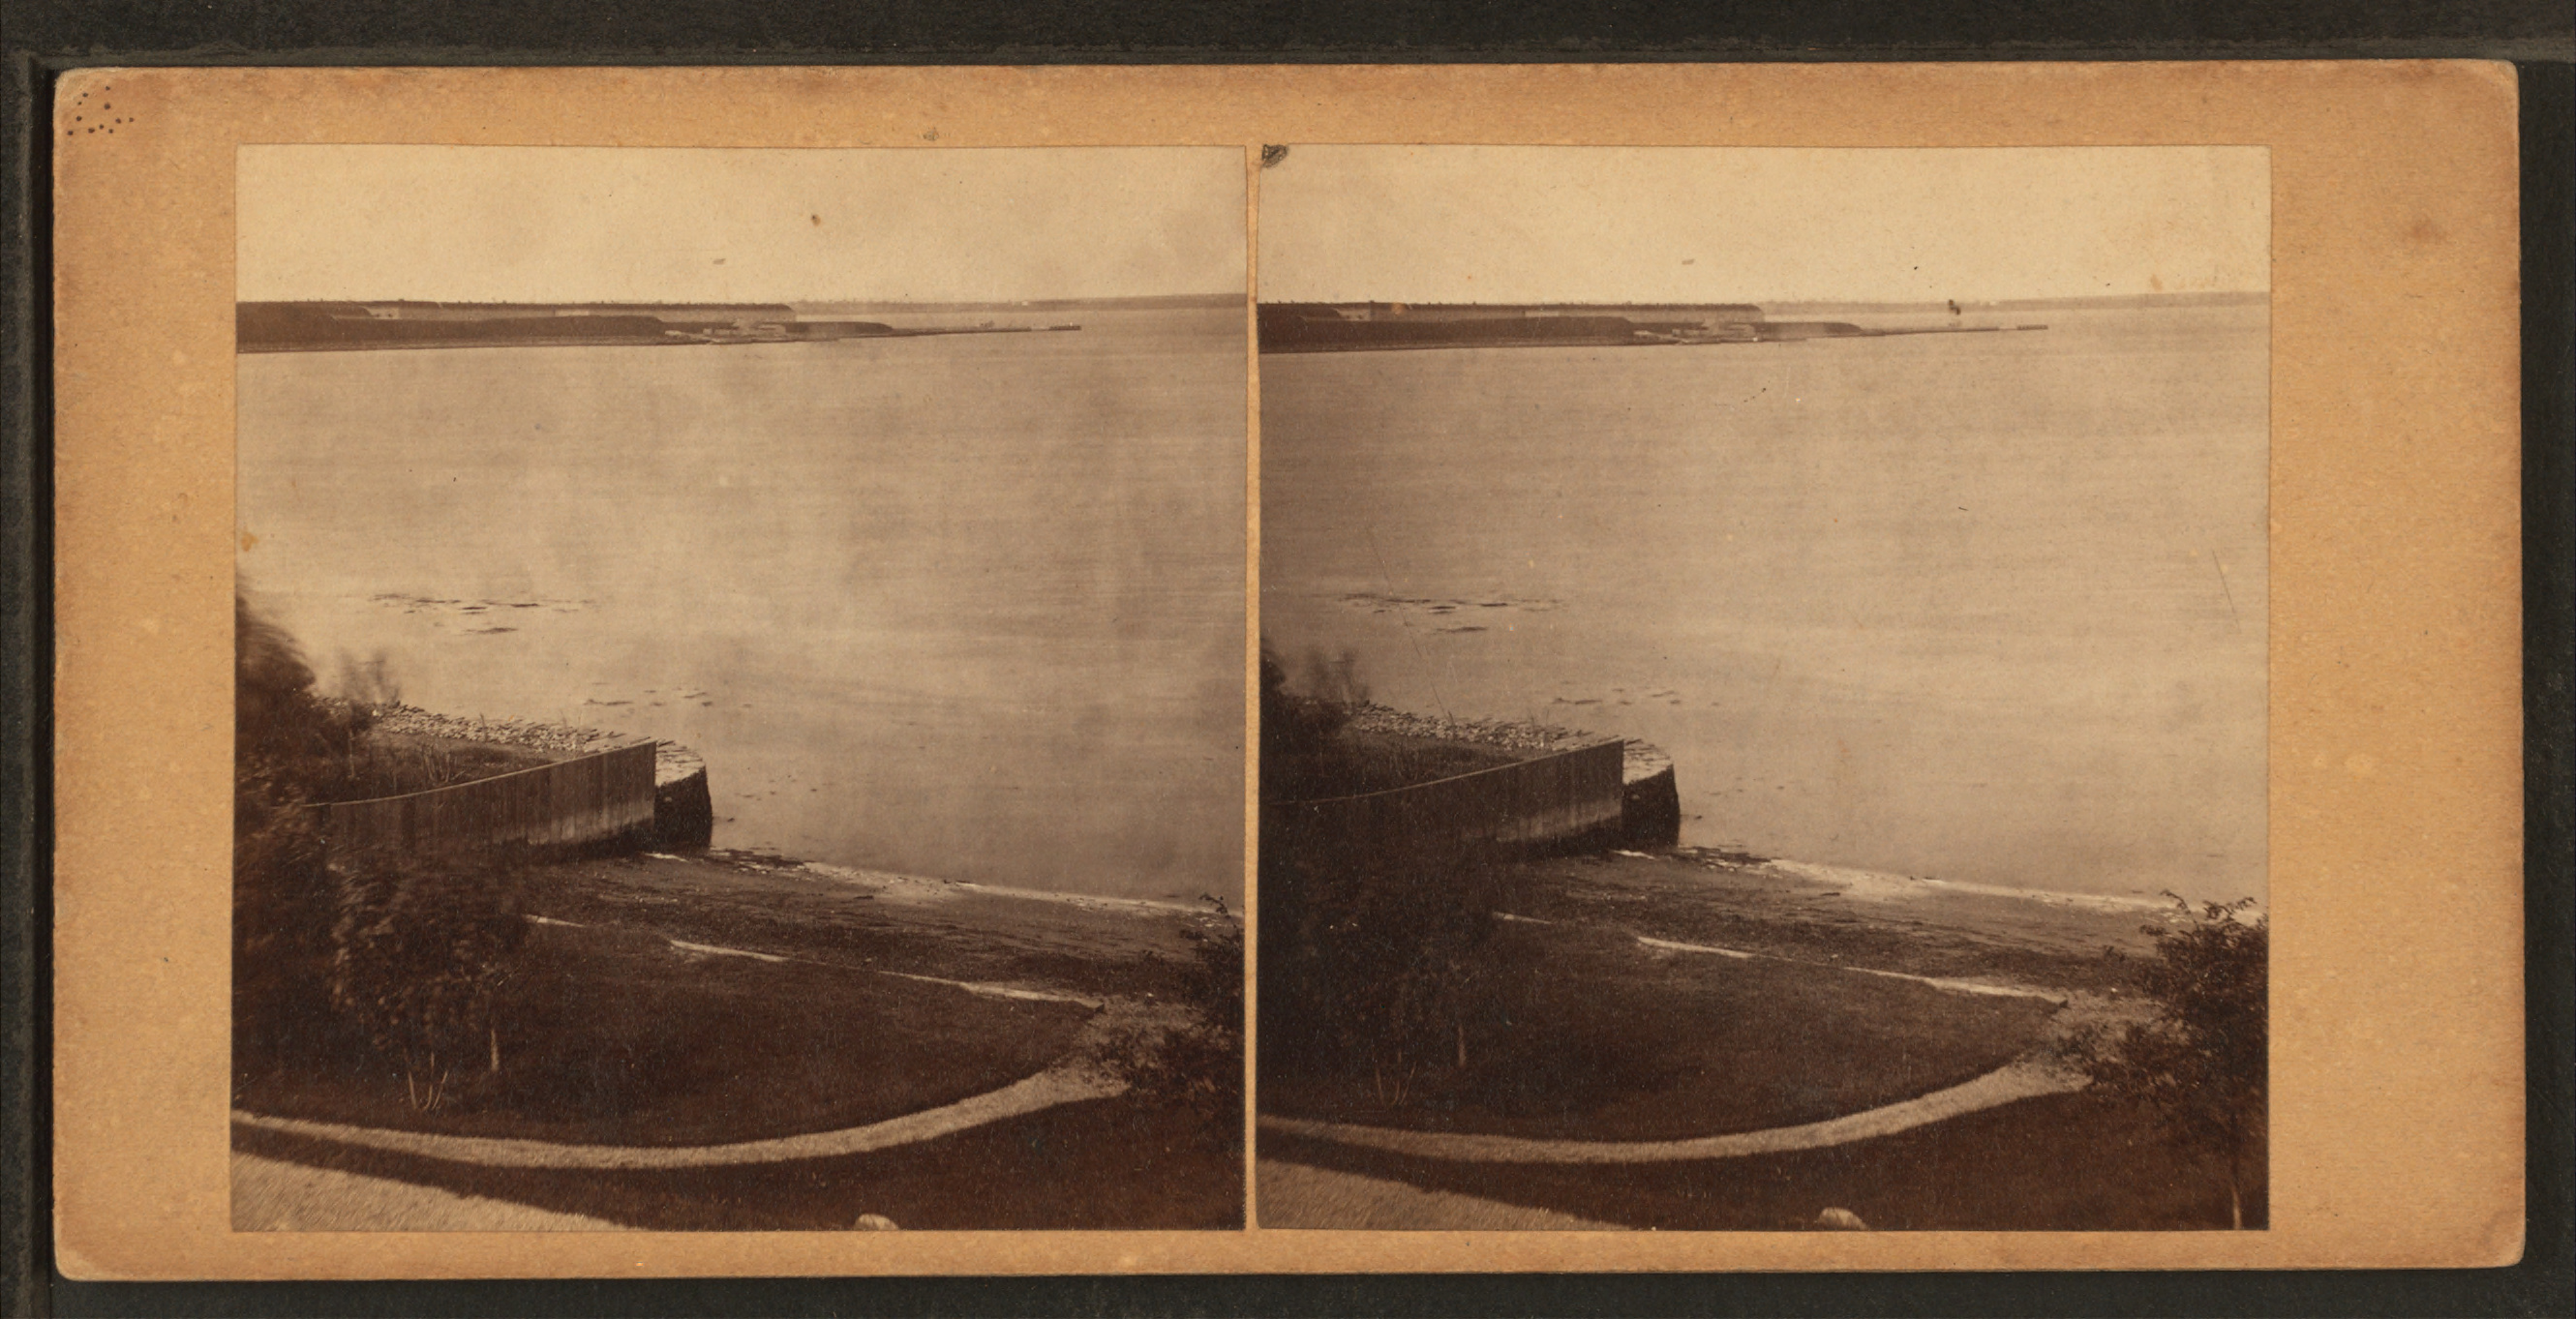 How to make stereoscopic images